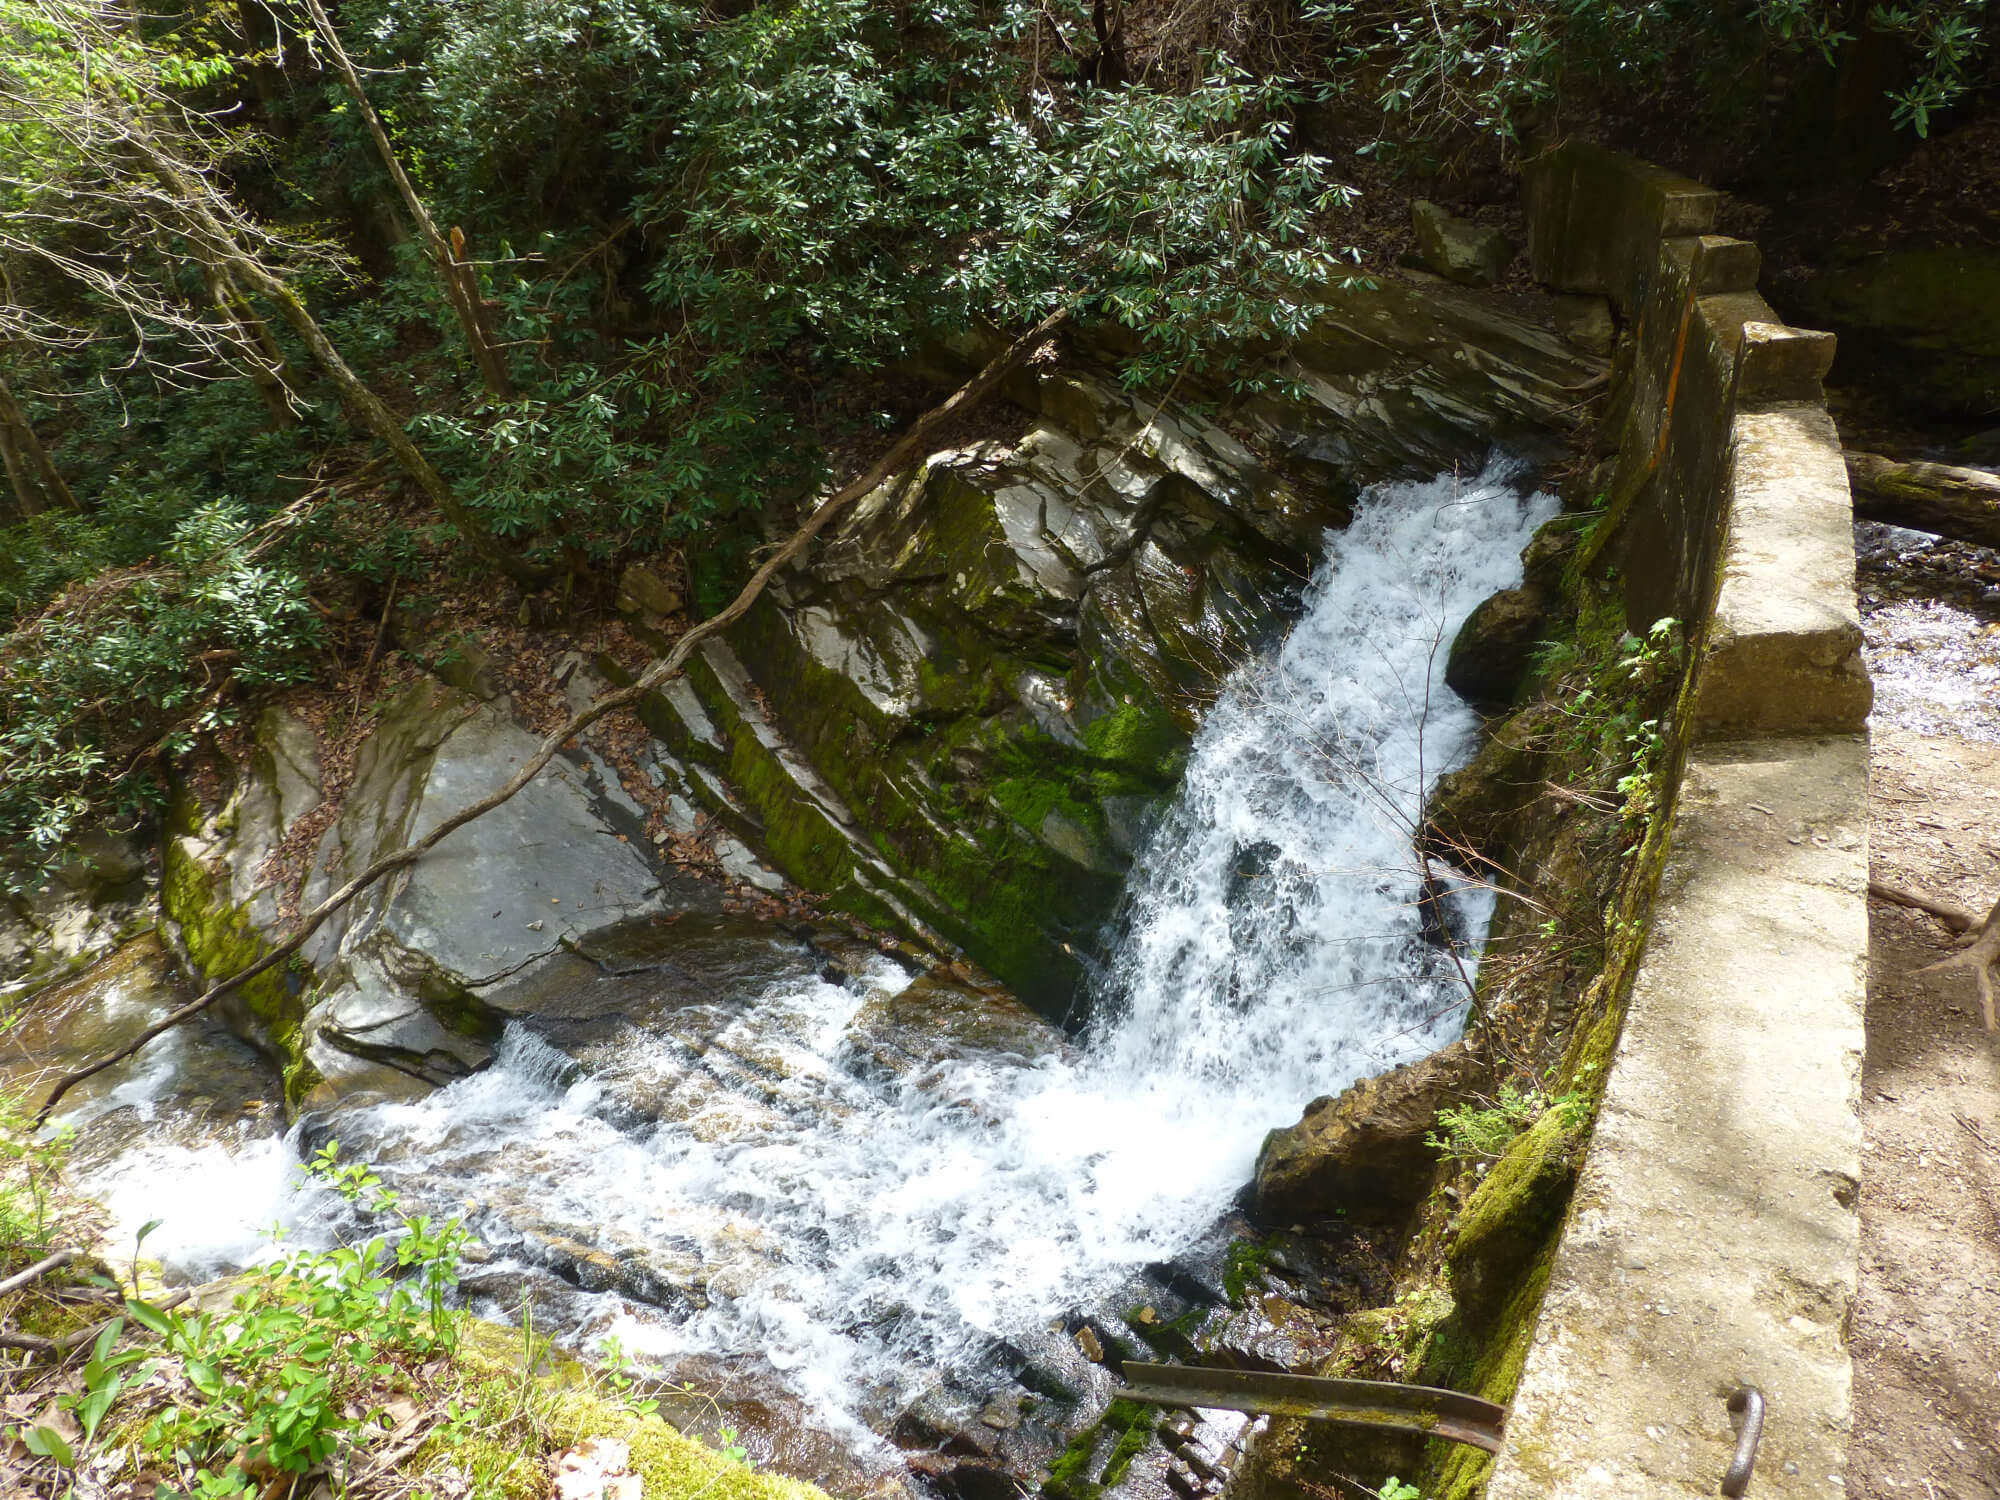 Water gushing through the ruins of an old dam covered in moss in the forest